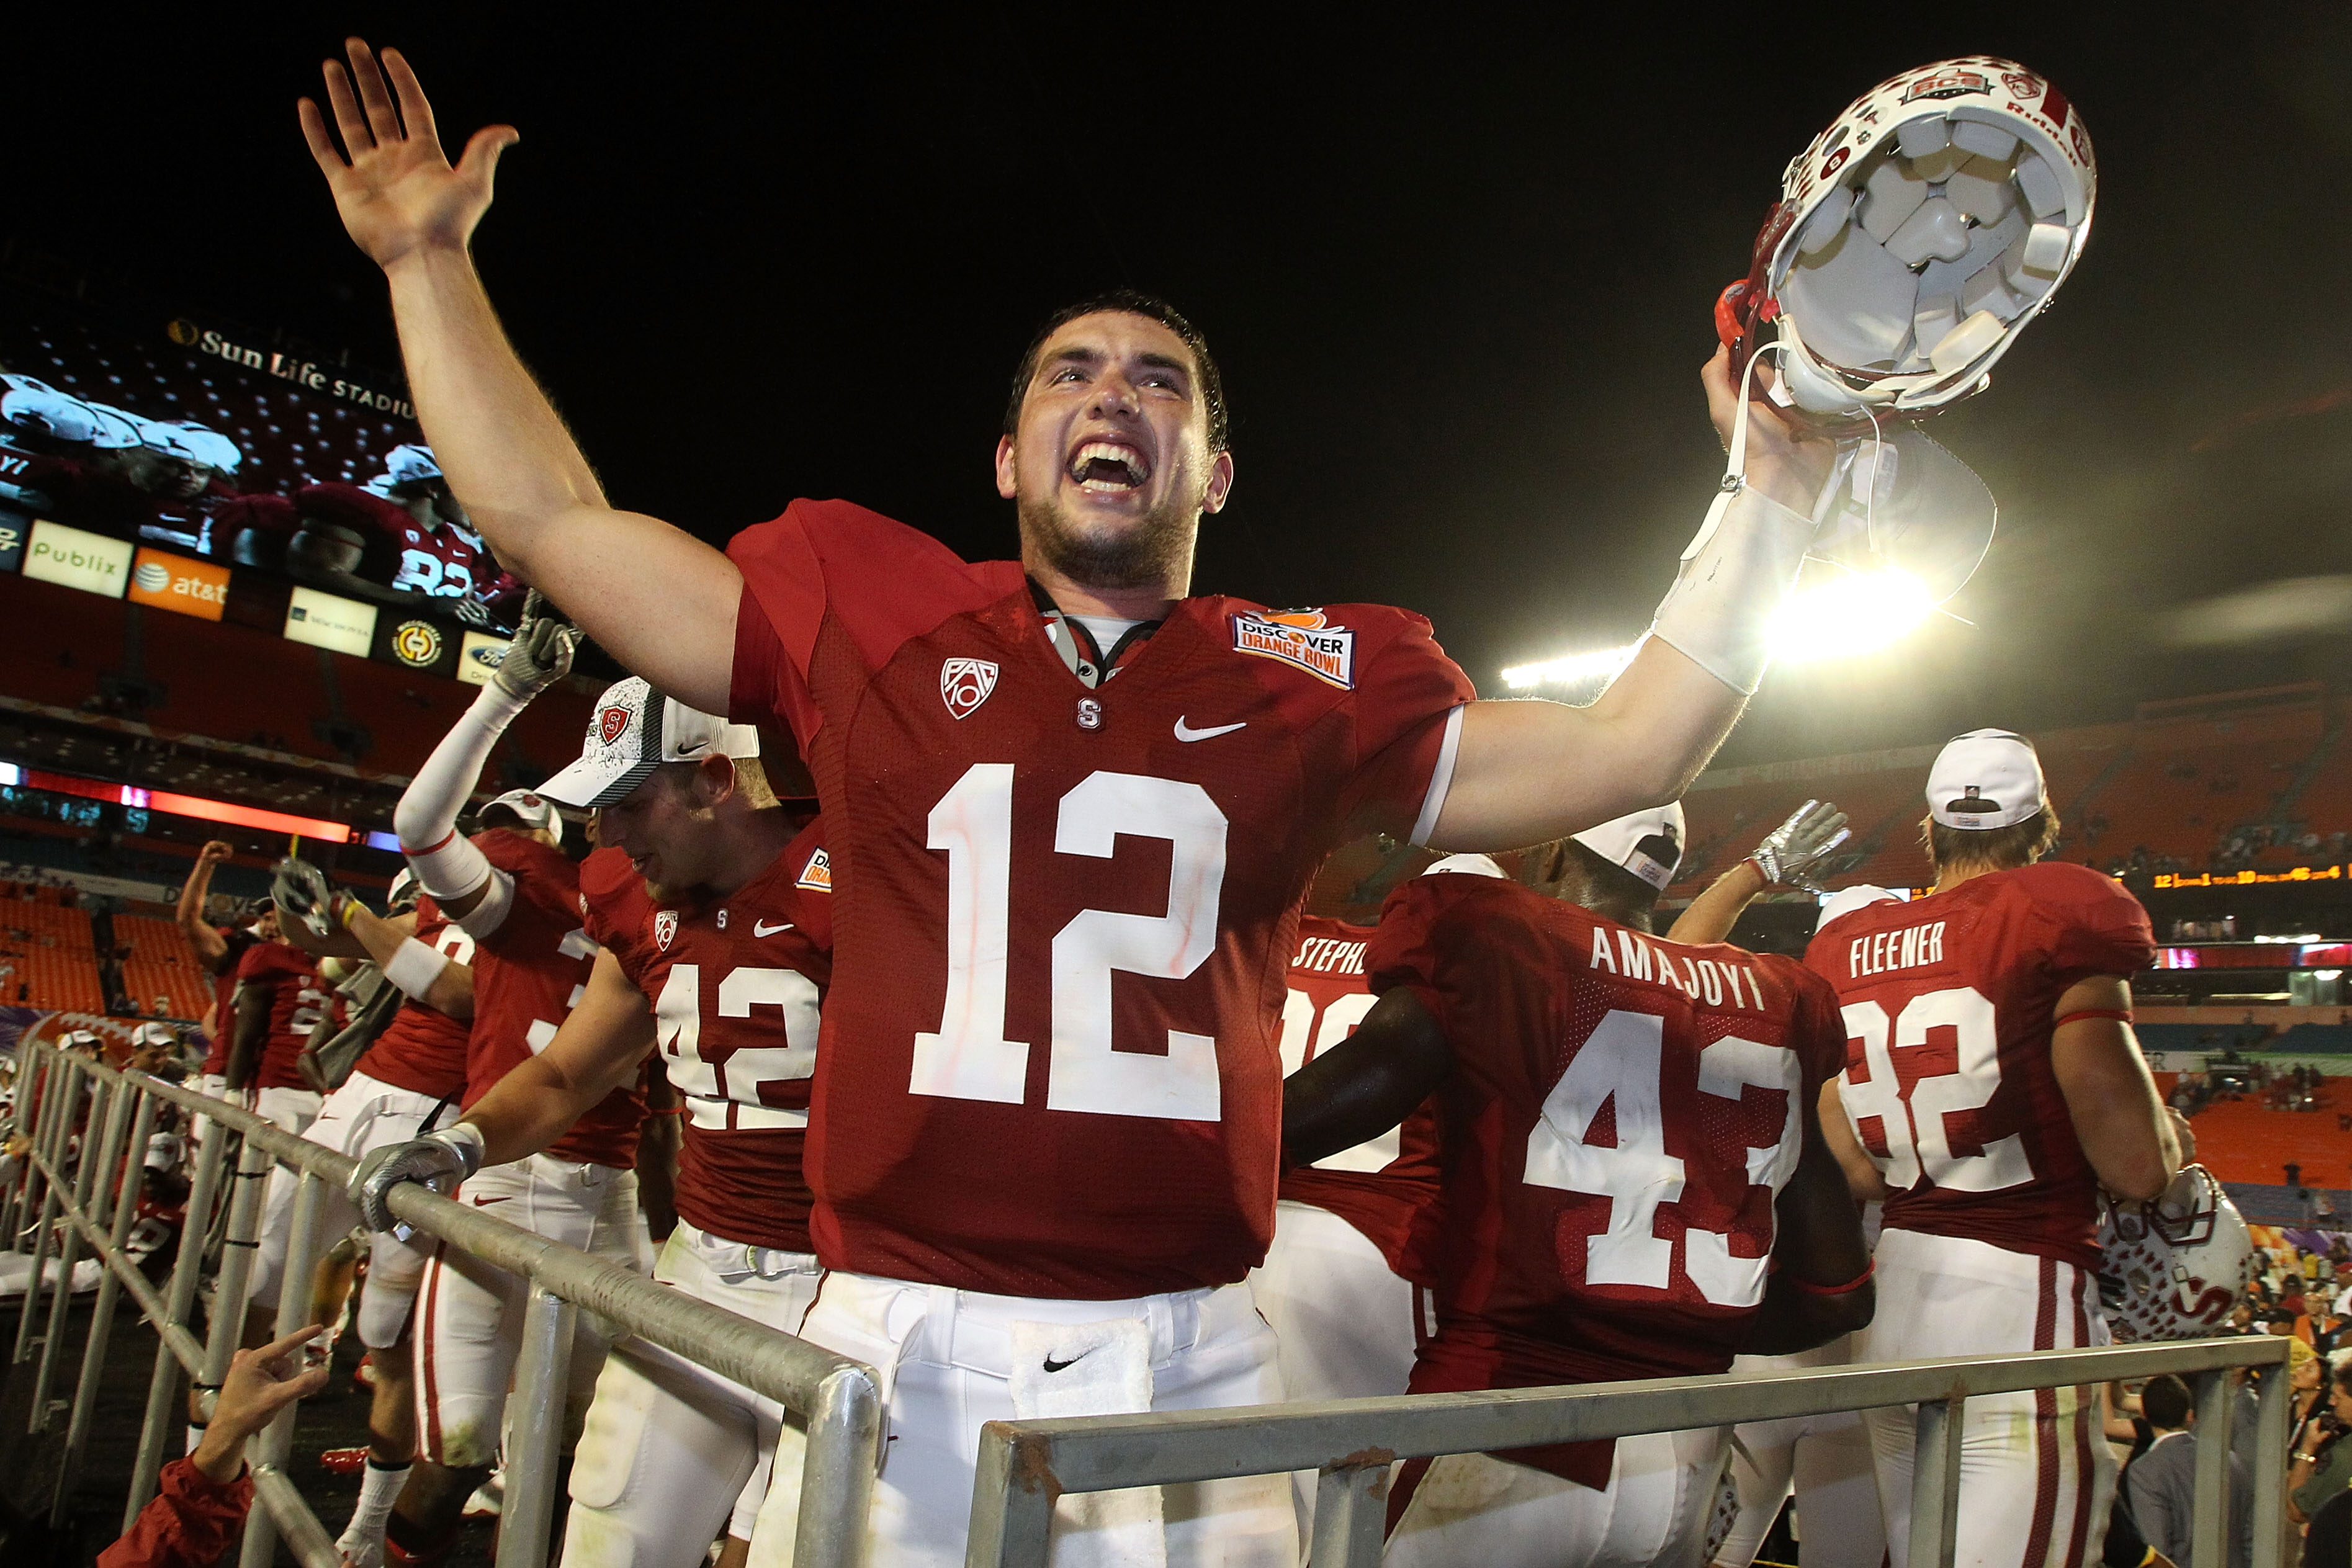 MIAMI, FL - JANUARY 03: Orange bowl MVP Andrew Luck #12 of the Stanford Cardinal celebrates after Stanford won 40-12 against the Virginia Tech Hokies during the 2011 Discover Orange Bowl at Sun Life Stadium on January 3, 2011 in Miami, Florida. (Photo by